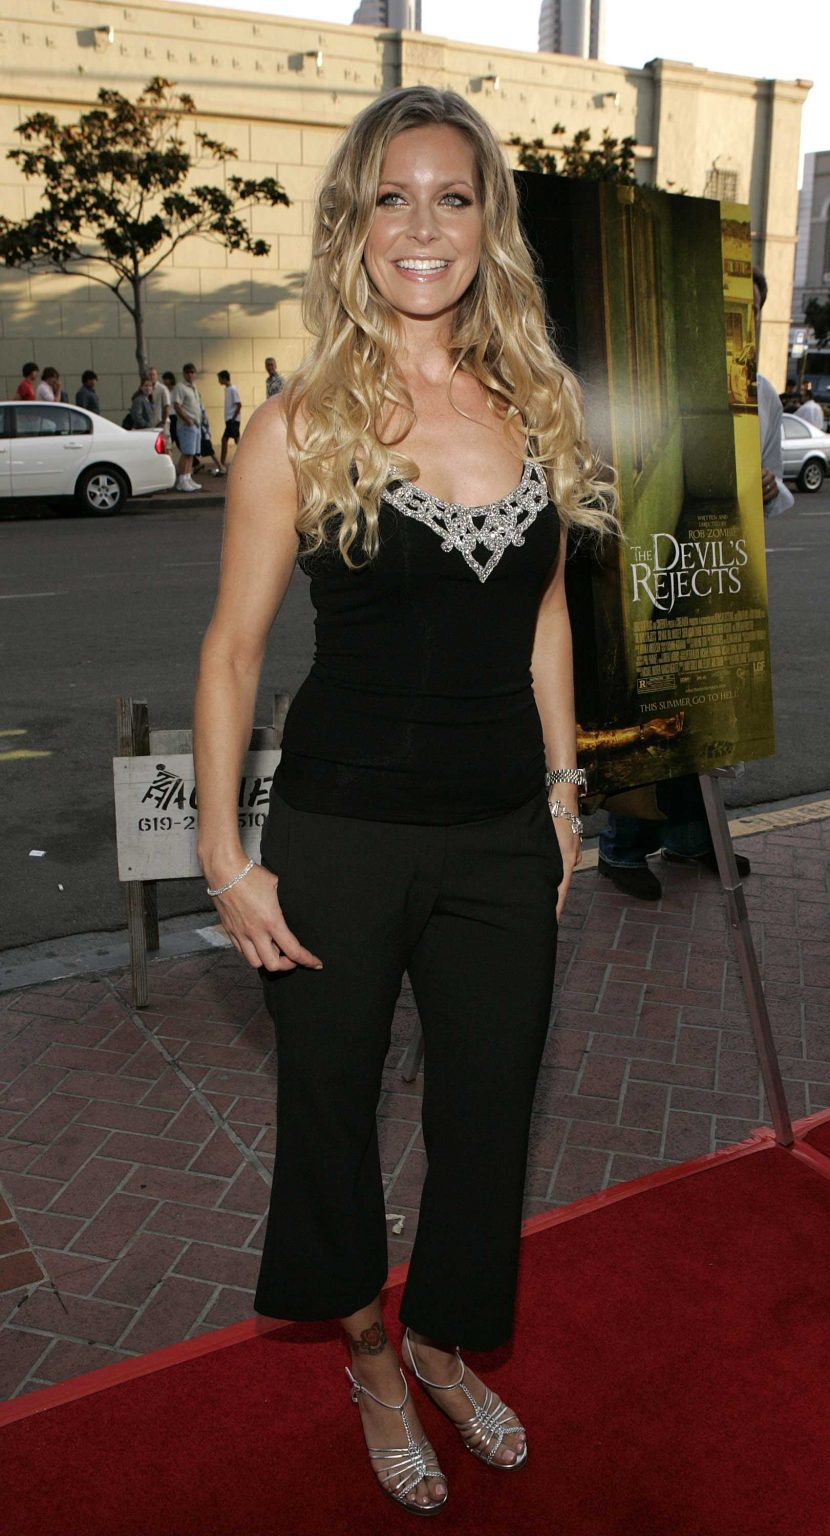 51 Sheri Moon Zombie Big Butt Pictures Will Make You Fall In Love - GEEKS ON COFFEE